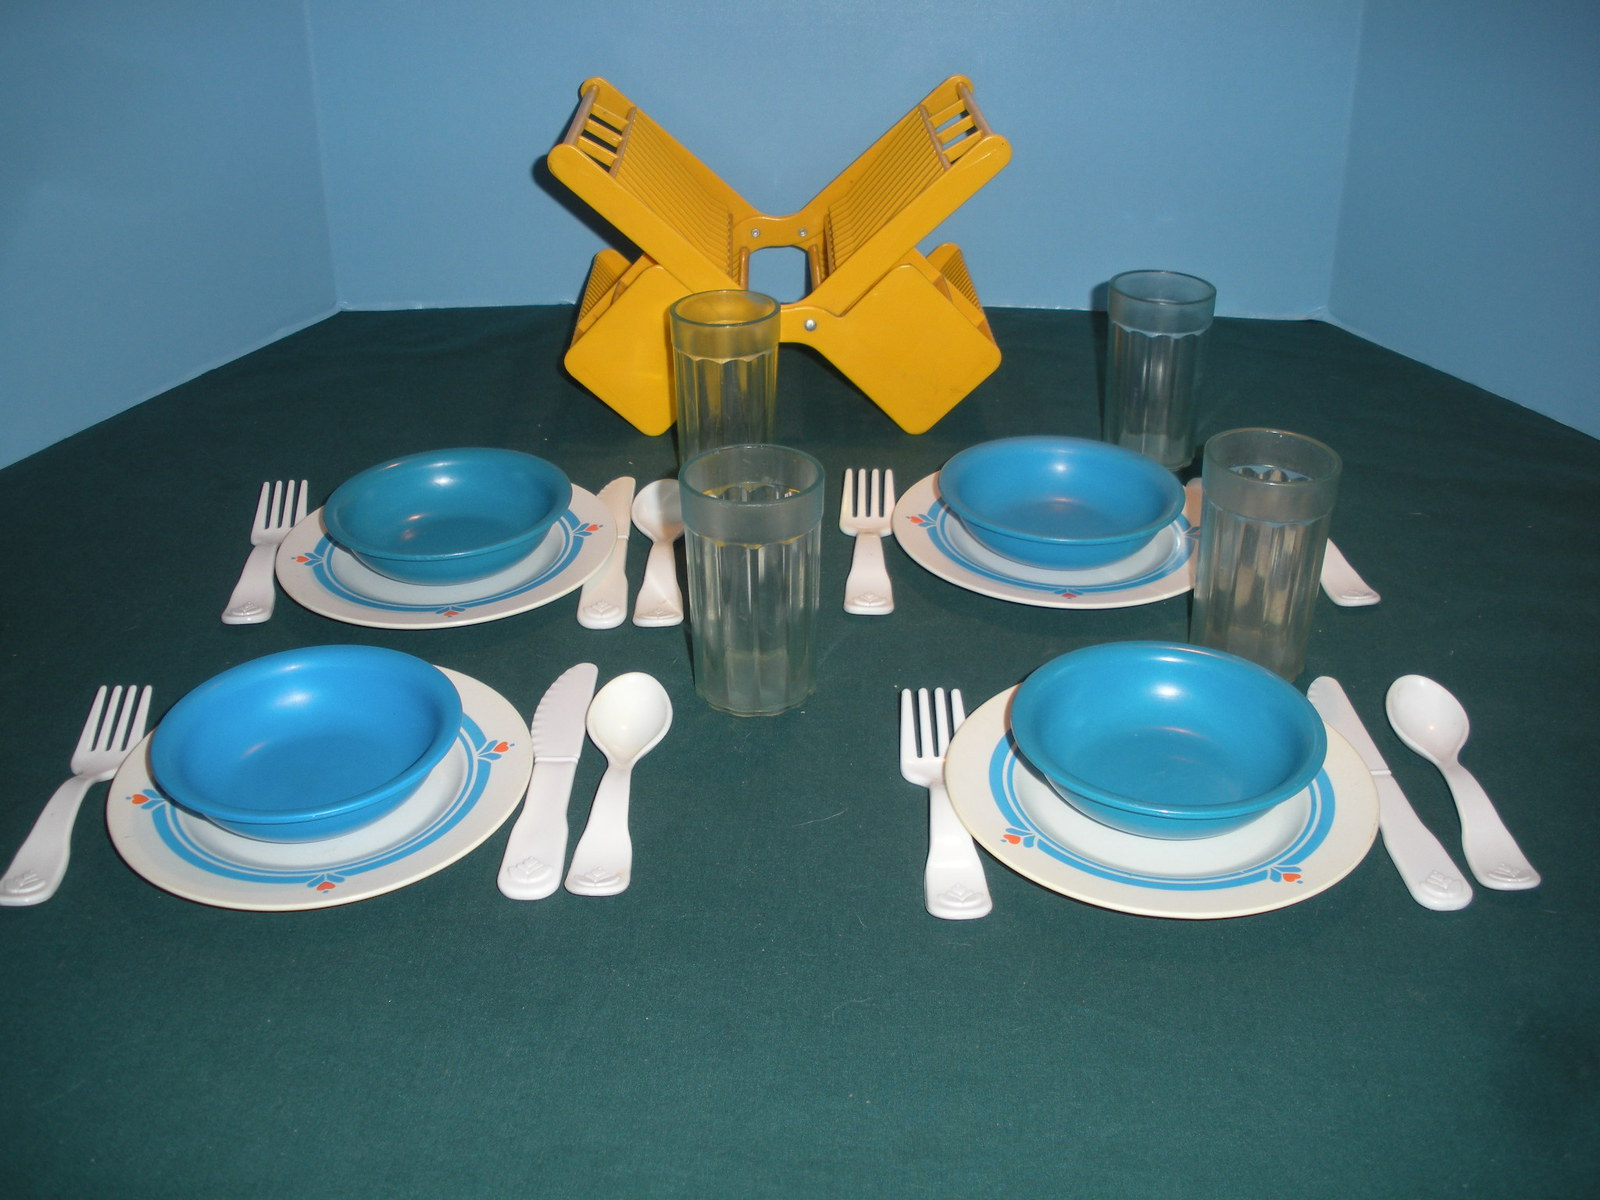 Vtg fisher price fun with food 2107 family dinnerware - Cuisine fisher price bilingue ...